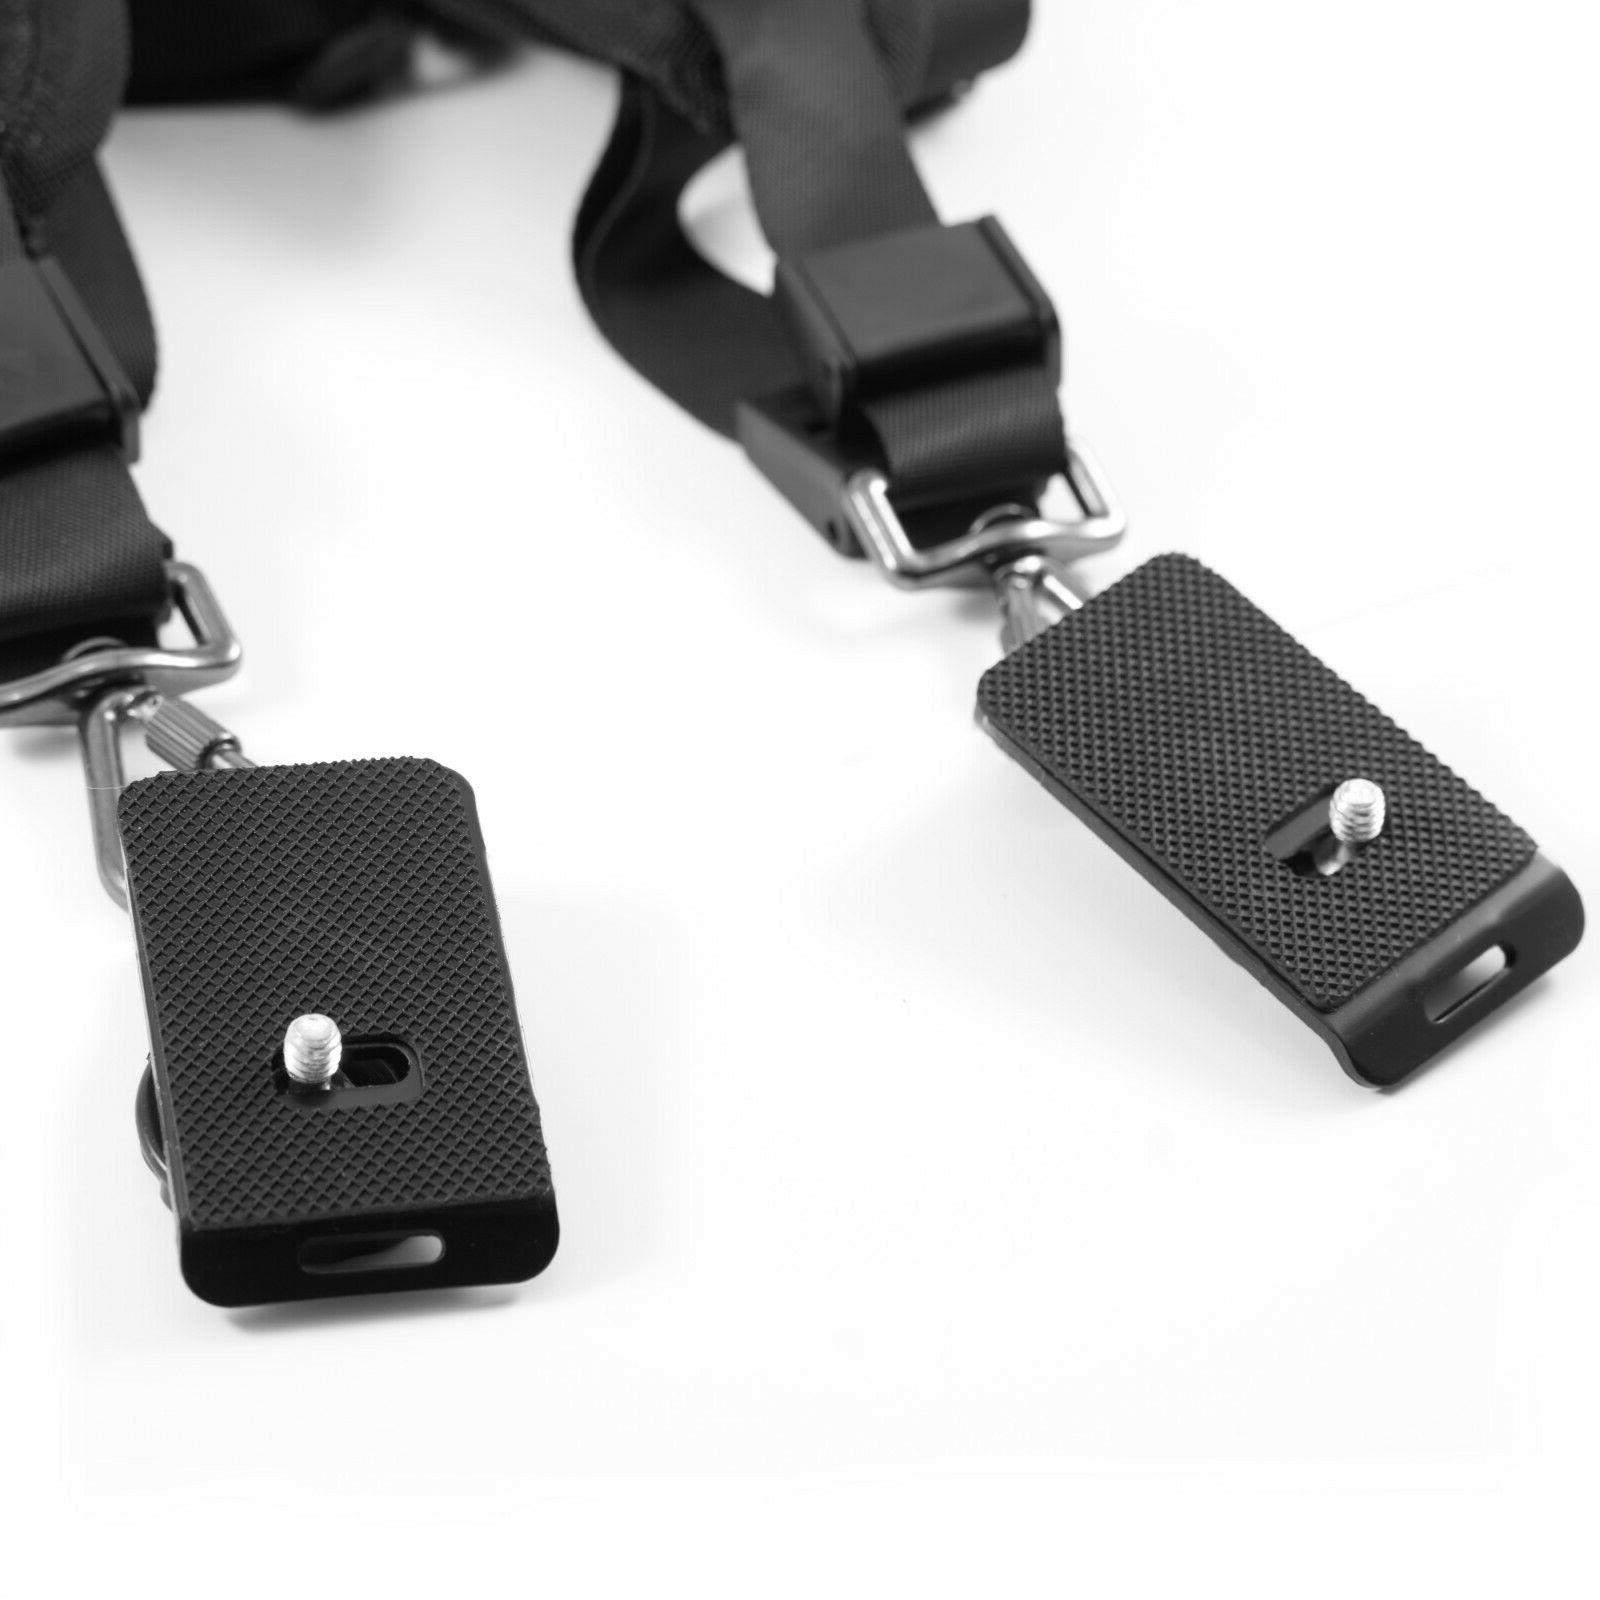 DOUBLE RELEASE 2 CAMERA MIRRORLESS